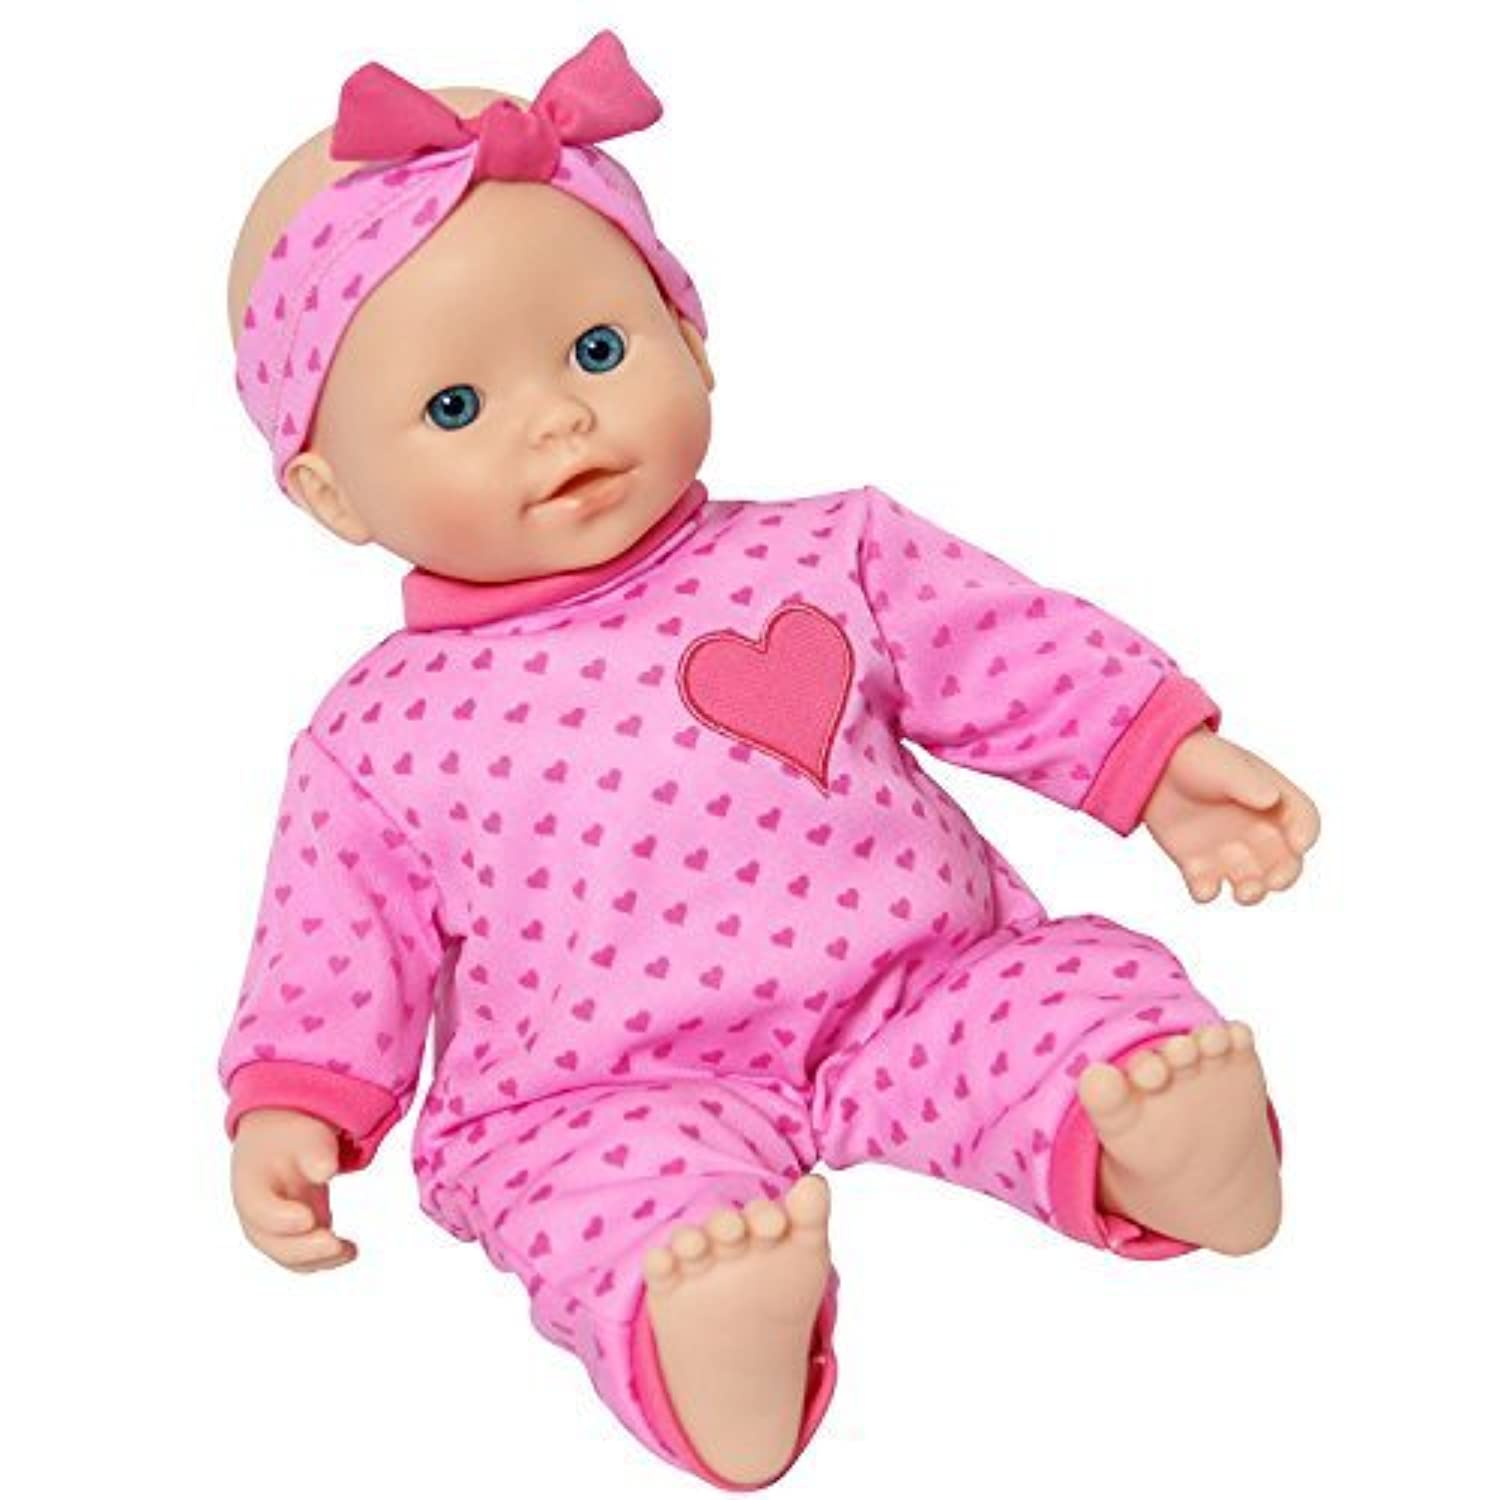 14 inch Soft Body Caucasian Baby Doll